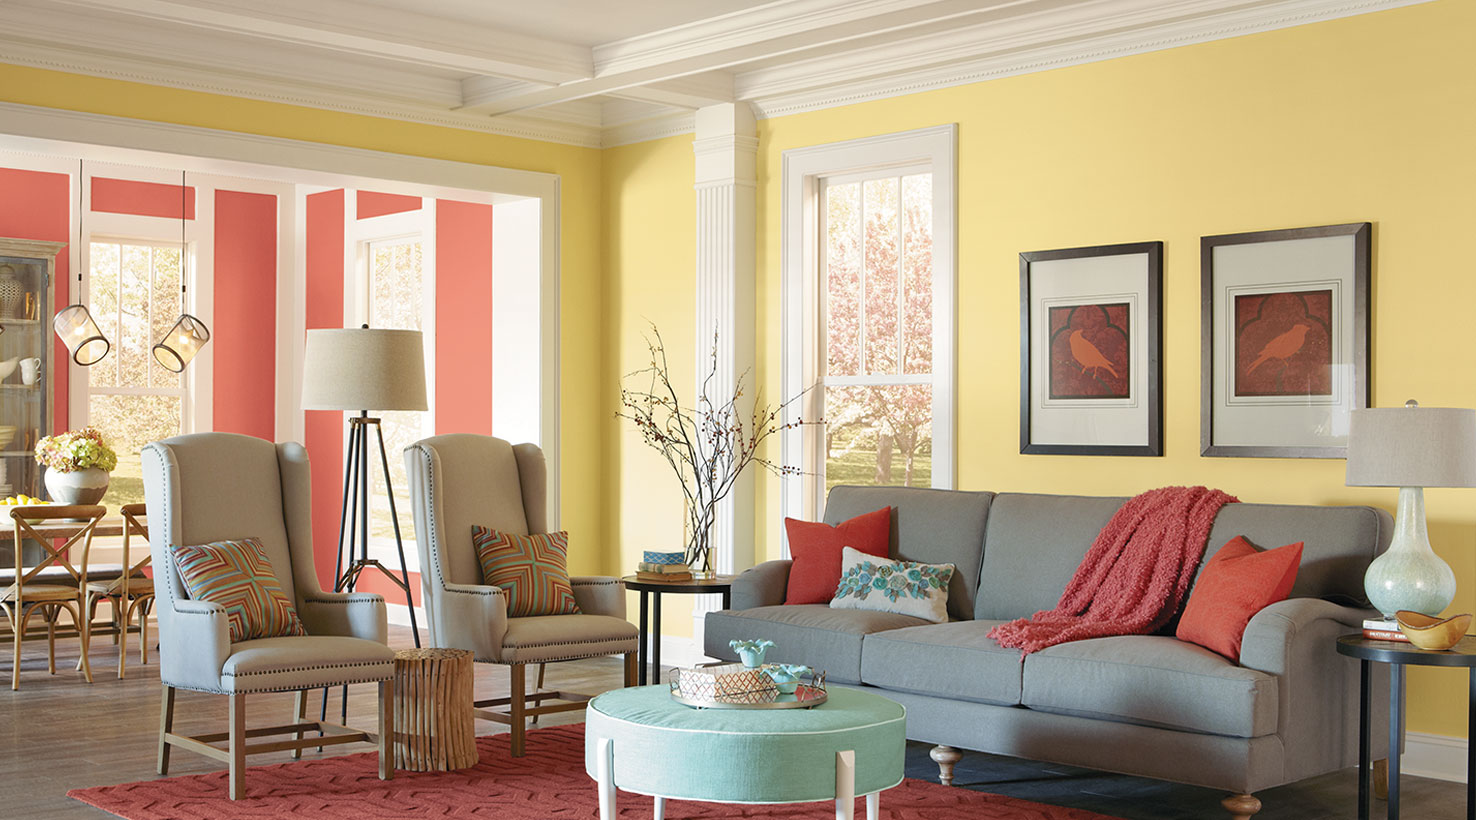 Paint Designs For Living Room: Living Room Paint Color Ideas